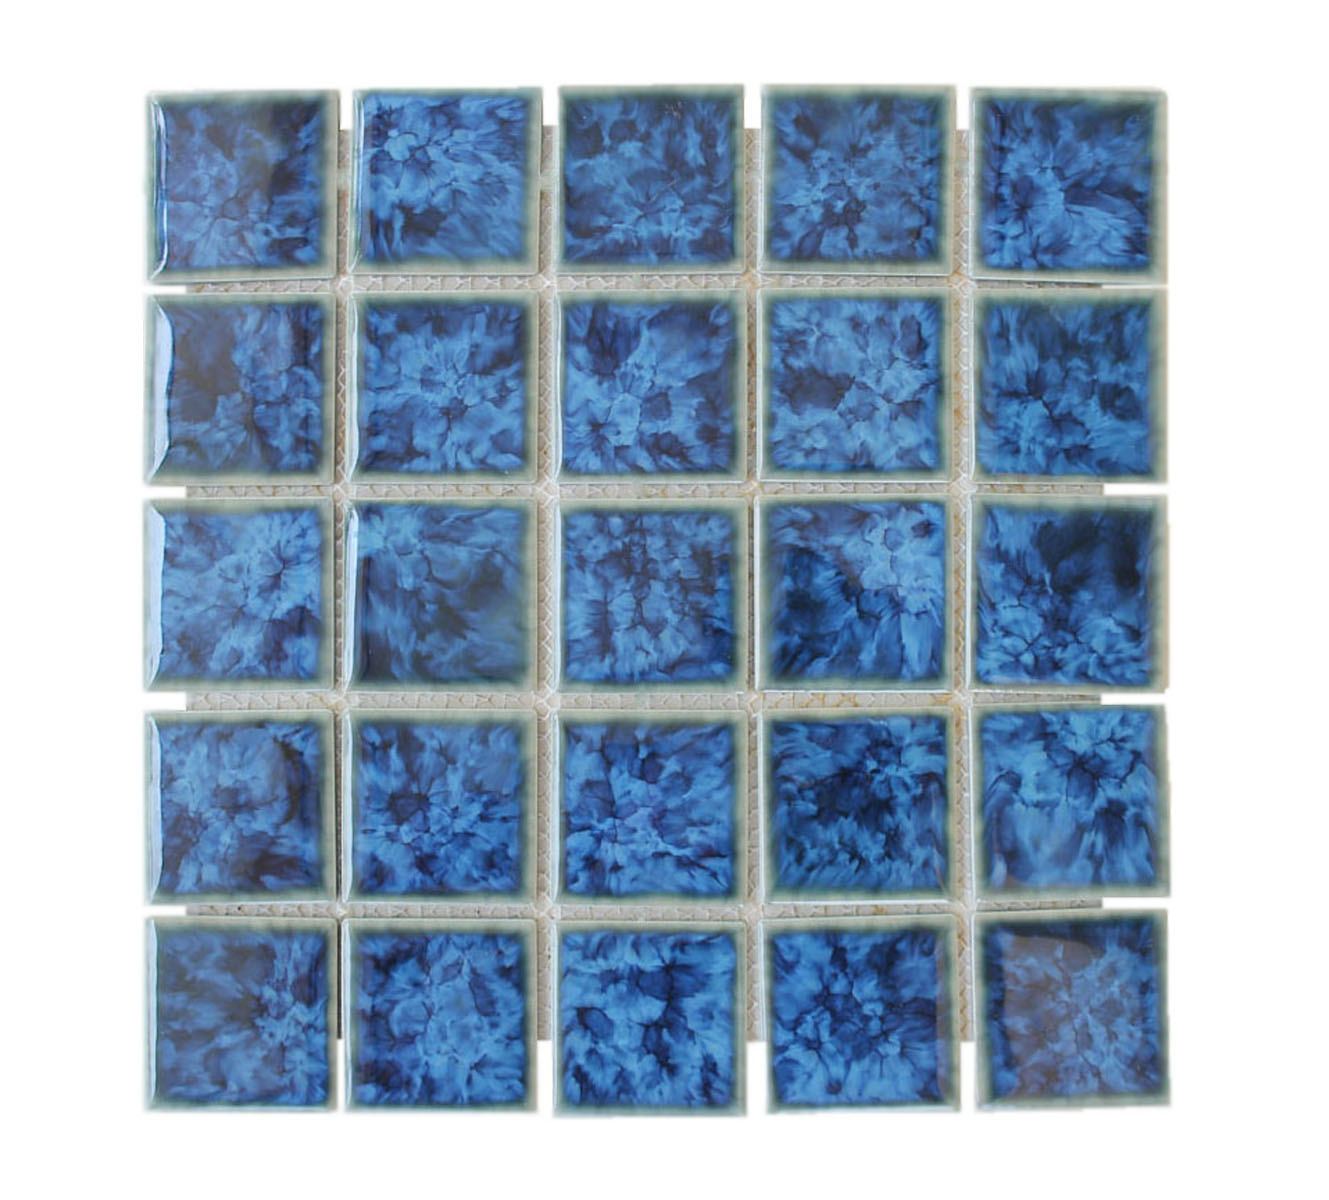 Bali Glazed Ceramic Mosaic Swimming Pool Tiles Indonesia Mosaic Porcelain Tile & Cearmic Tile